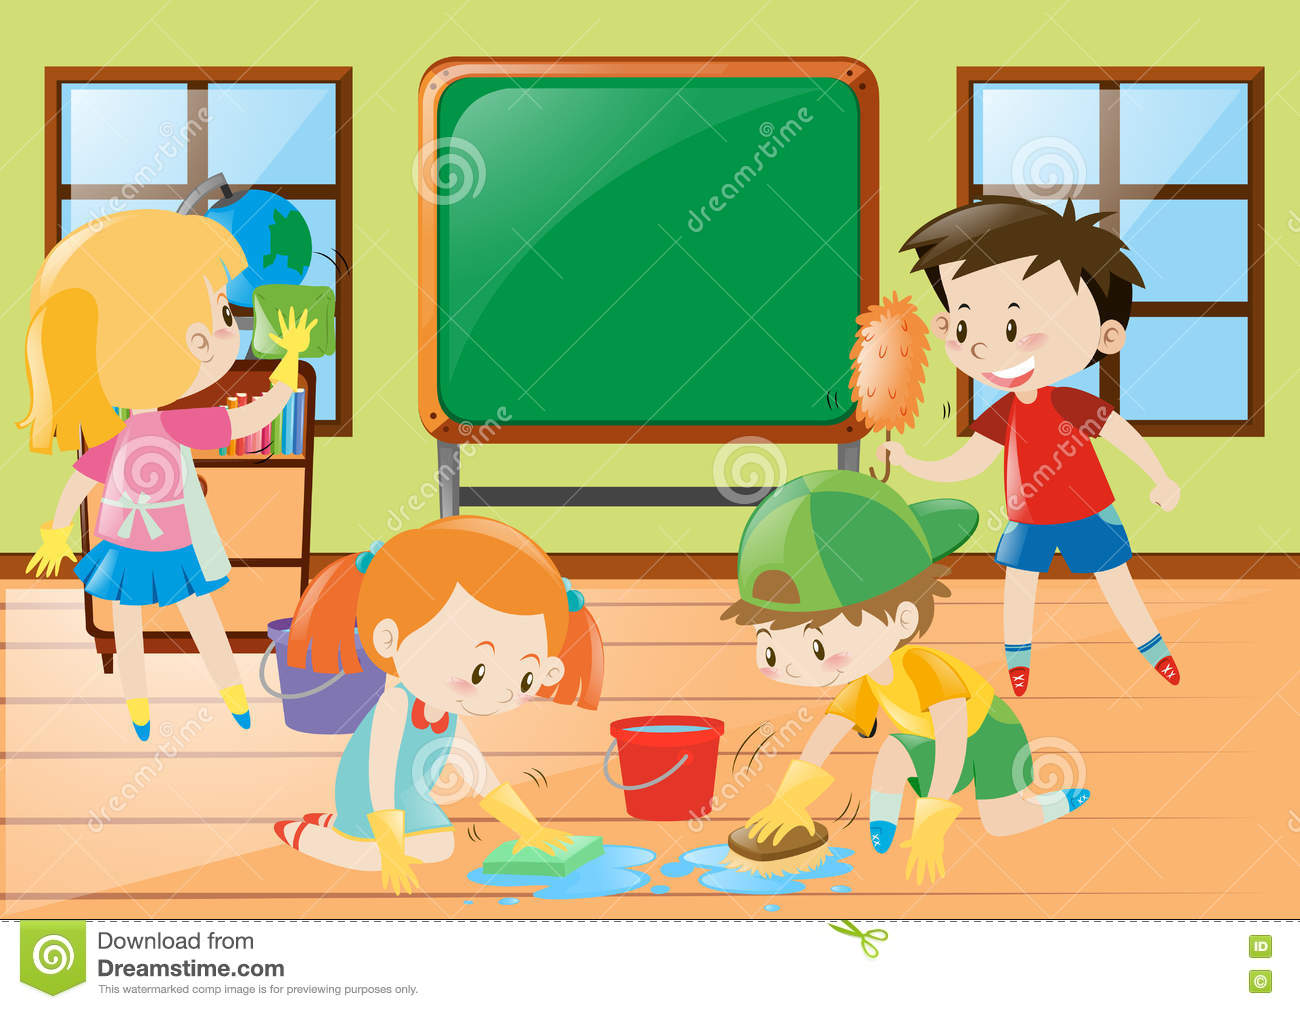 Cleaning the classroom clipart 1 » Clipart Station.